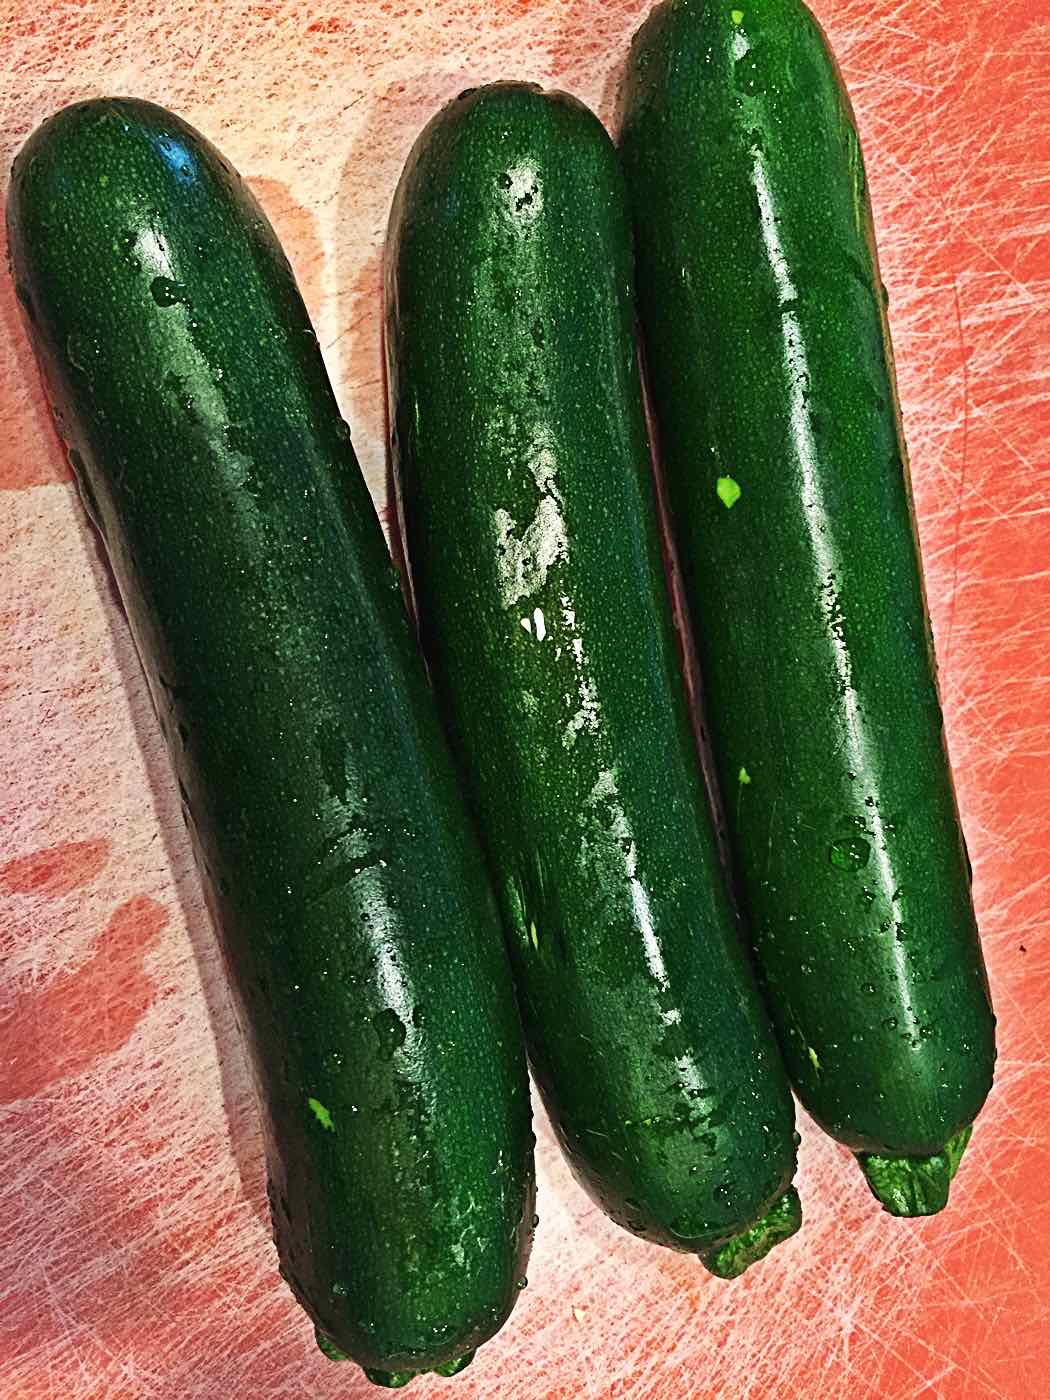 Zucchini whole